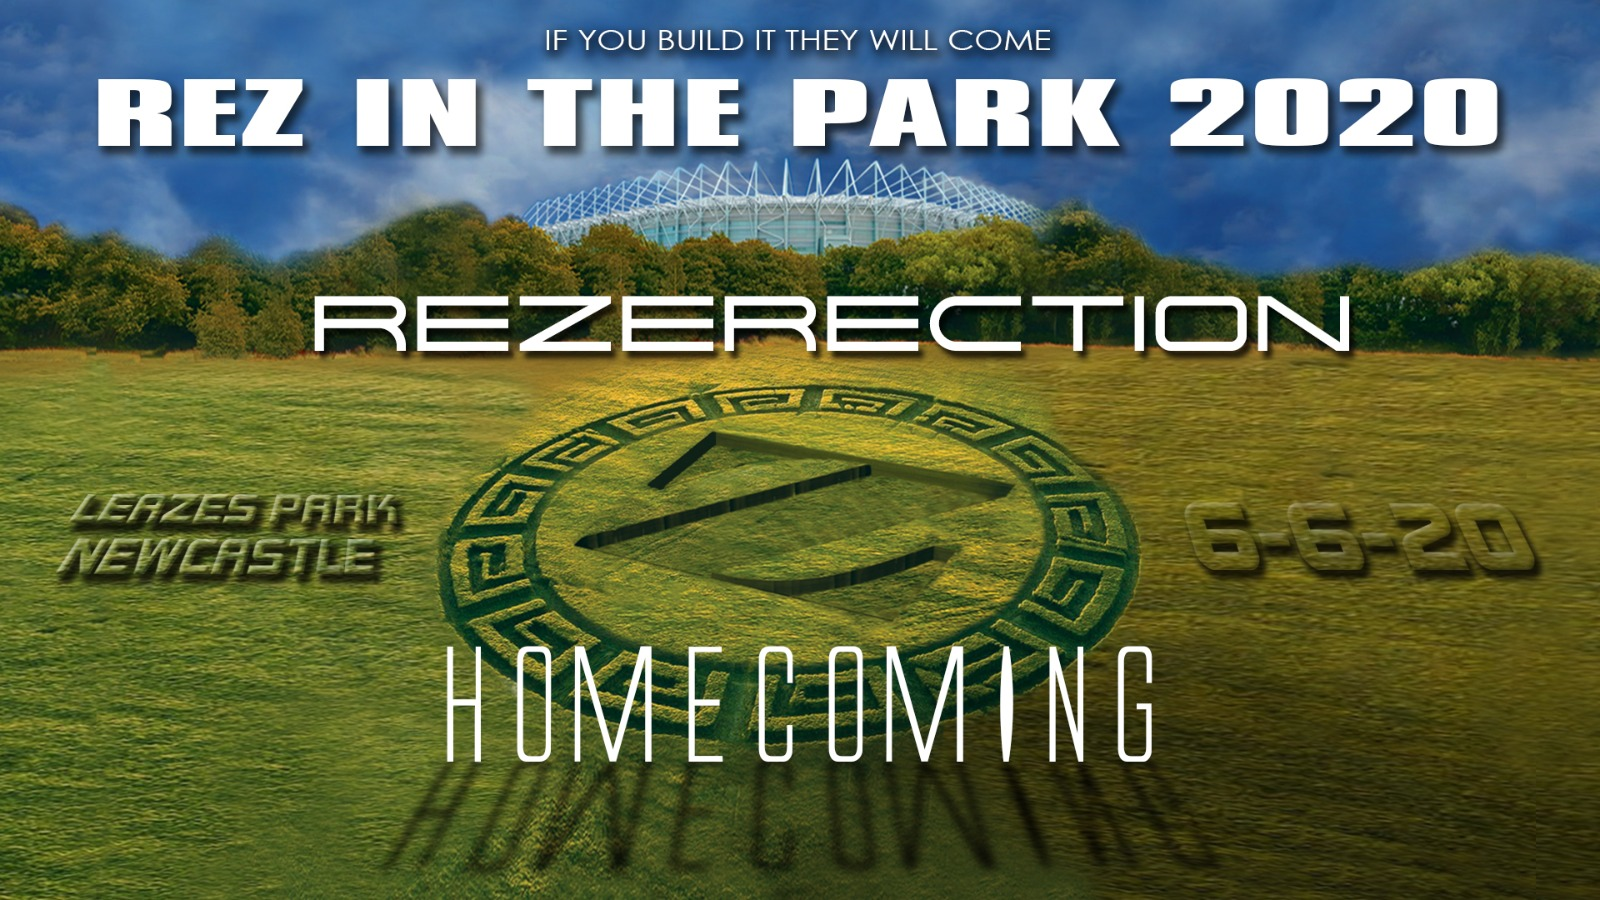 rez-in-the-park-6th-june-2020